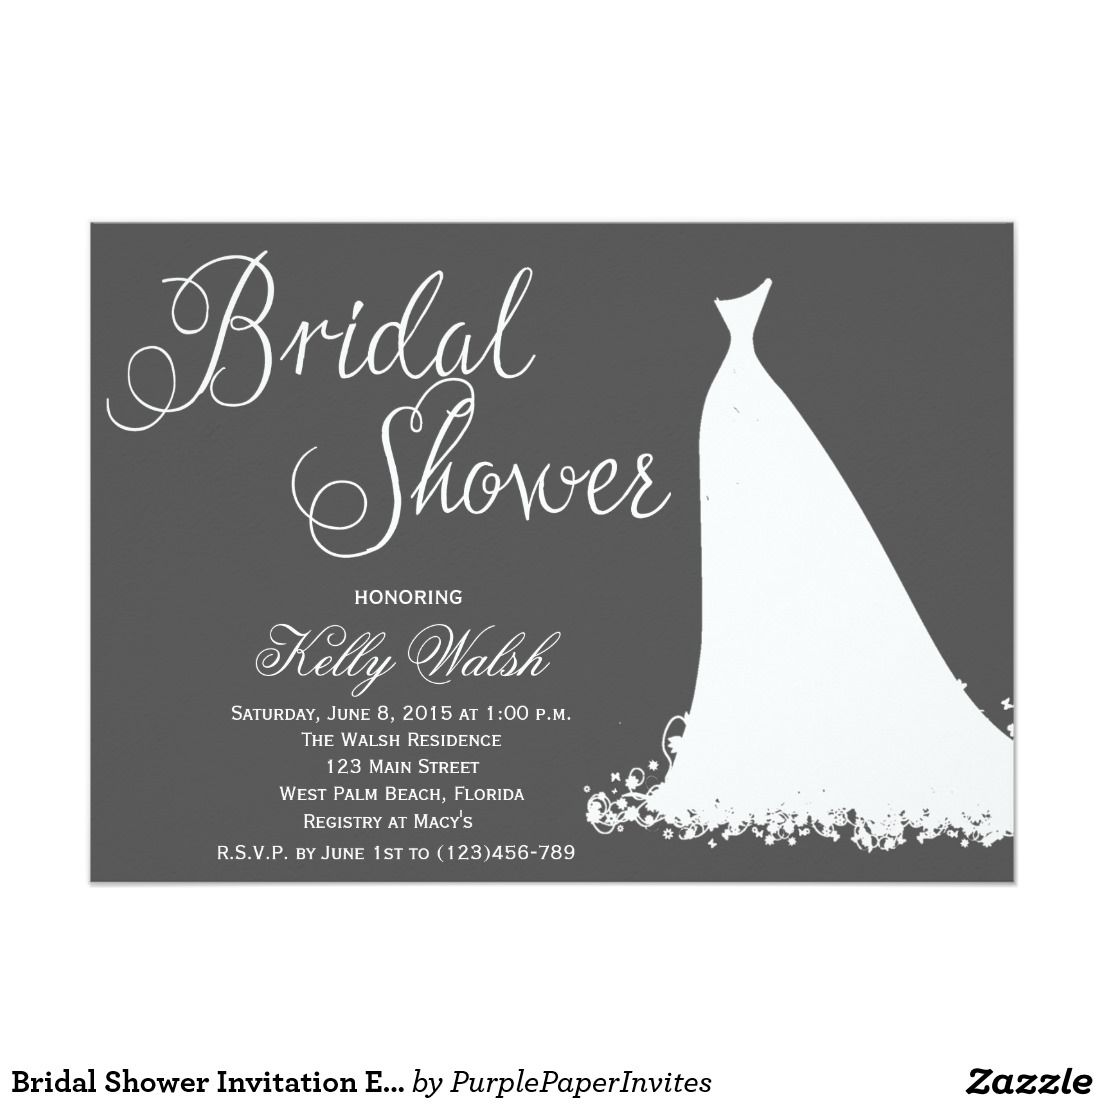 Bridal Shower Invitation Elegant Wedding Dress | Elegant wedding ...